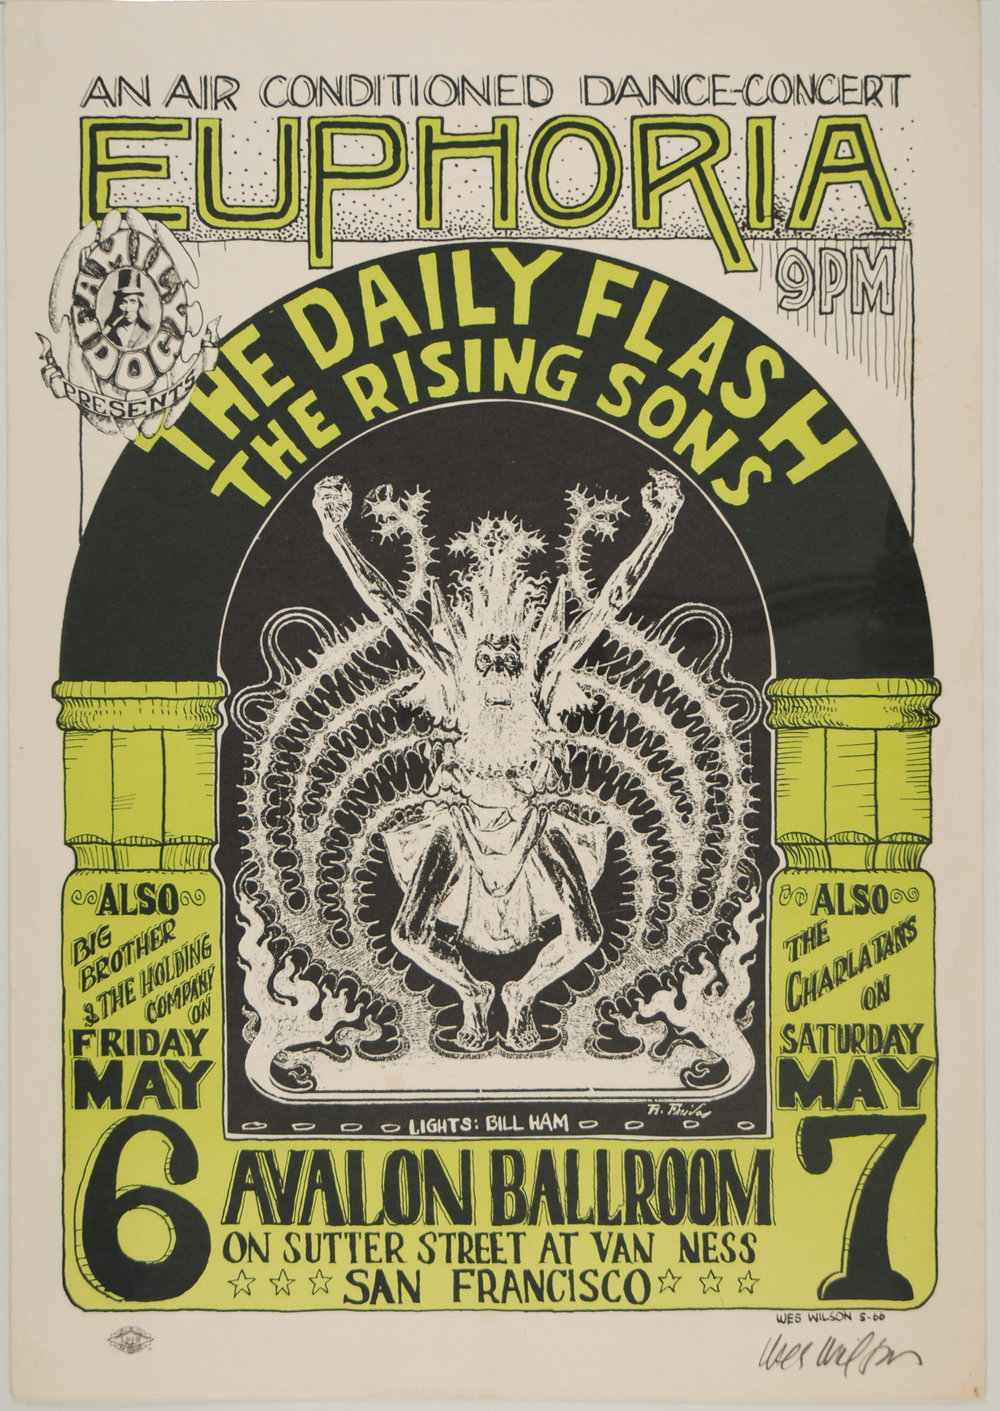 Daily Flash, Avalon Ballroom